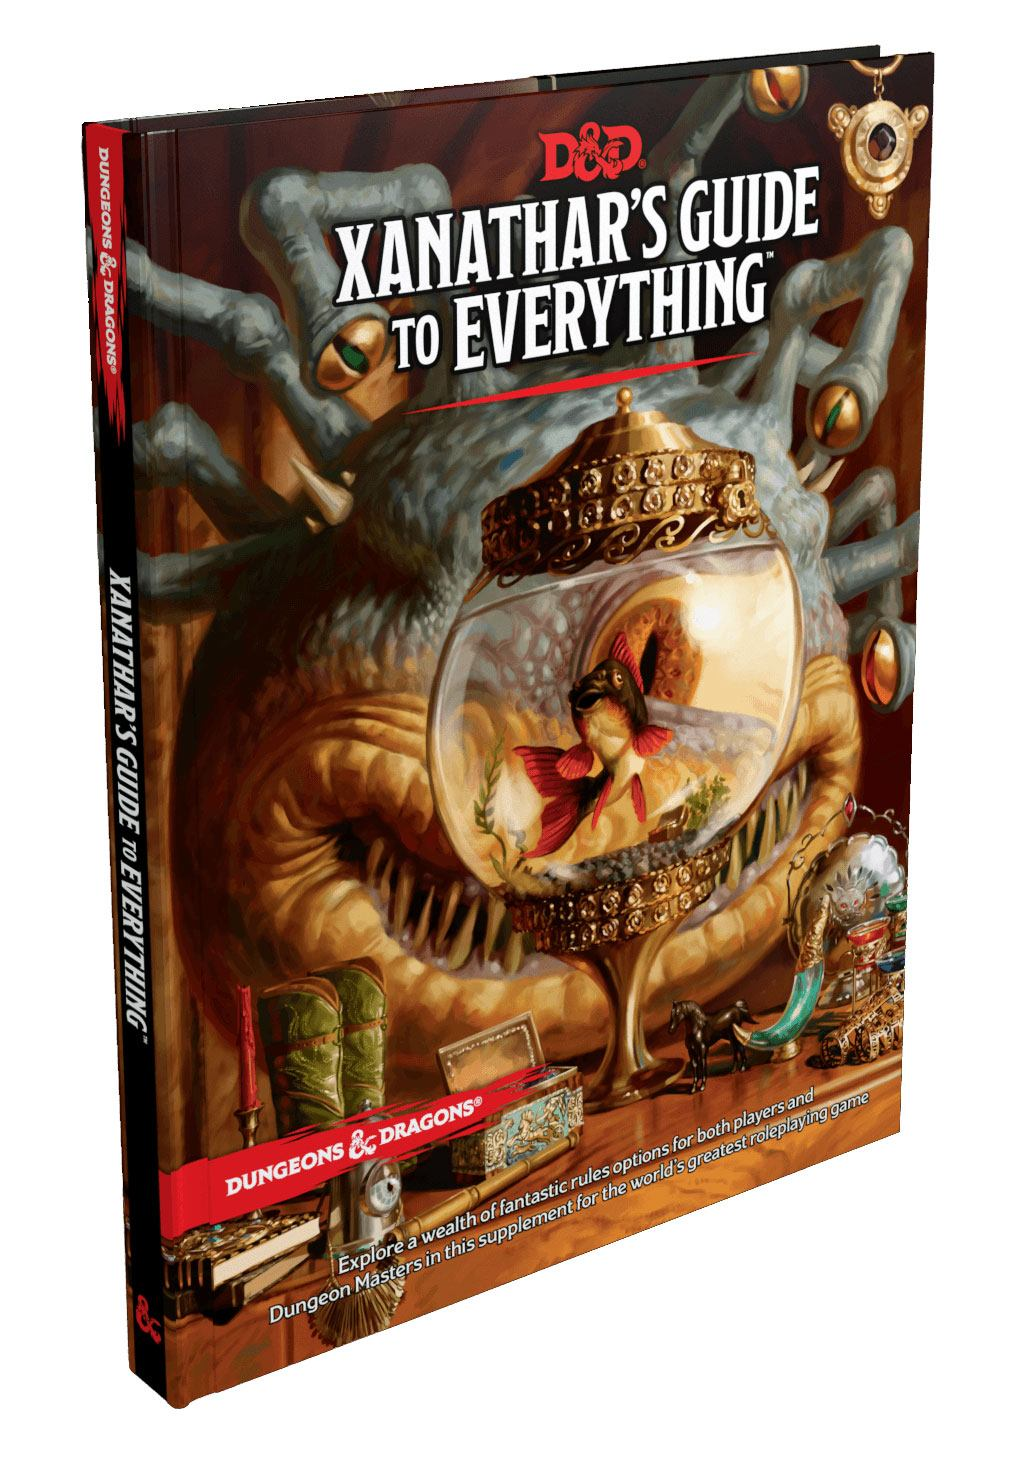 Dungeons & Dragons RPG Xanathar's Guide To Everything